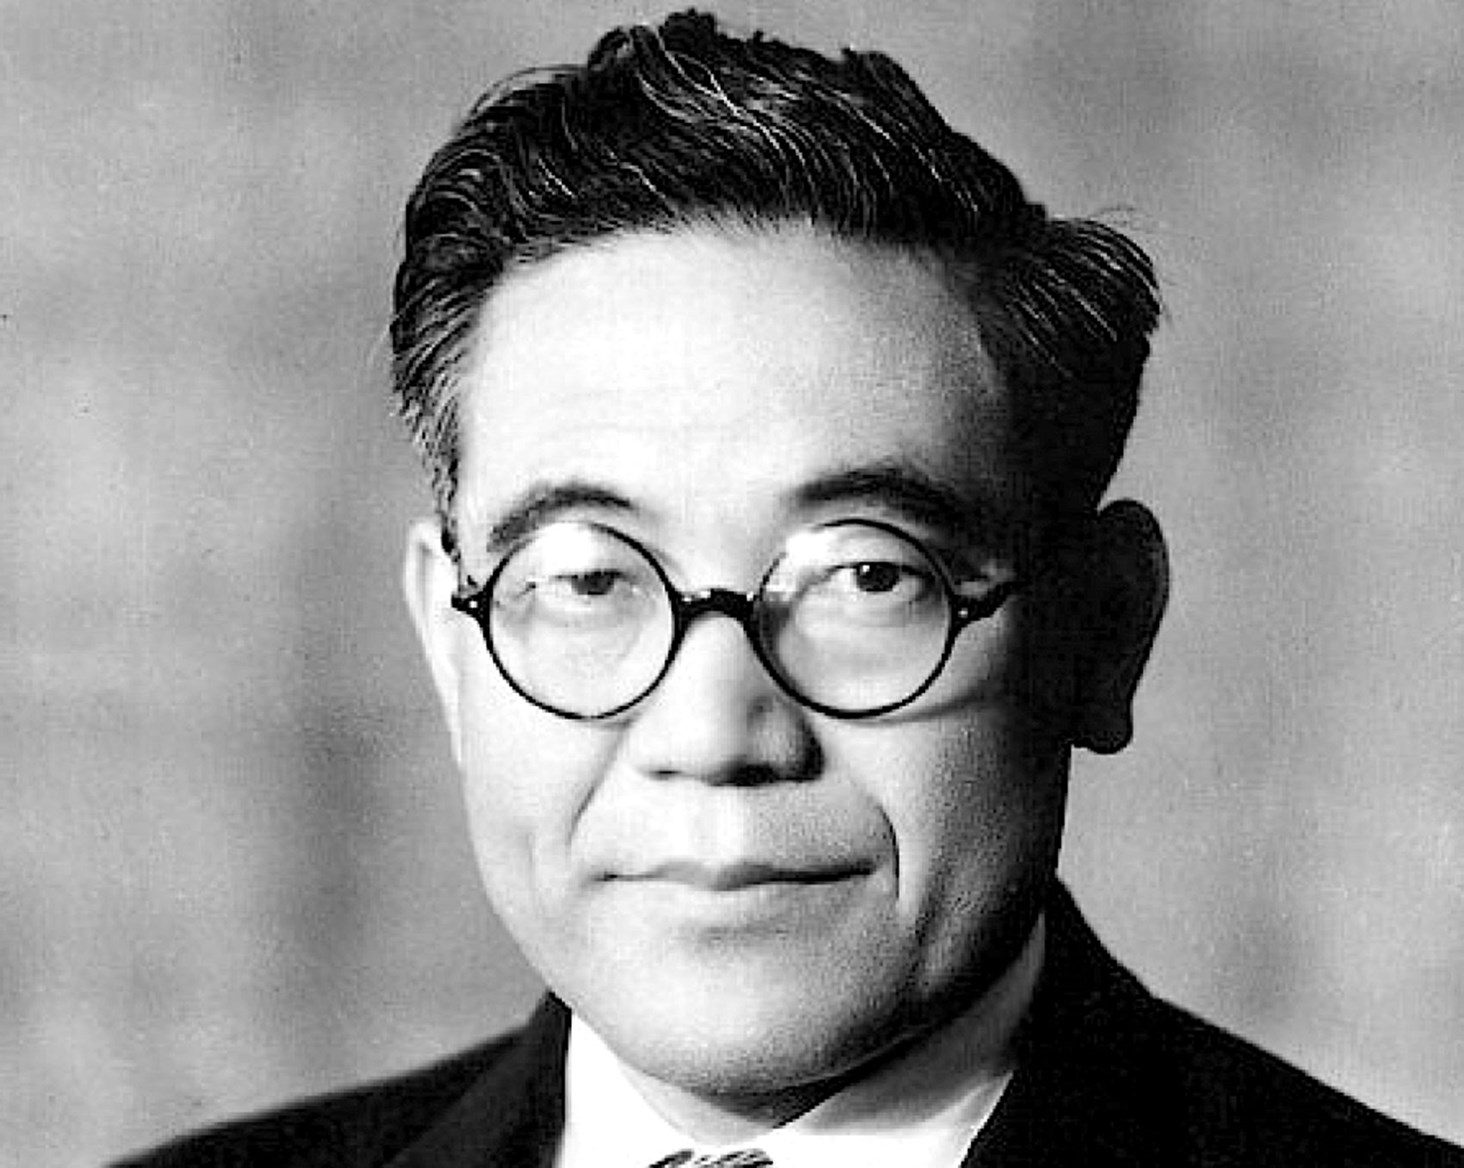 Founder of Toyota Motor Corporation Kiichiro Toyoda Inducted into Automotive Hall of Fame